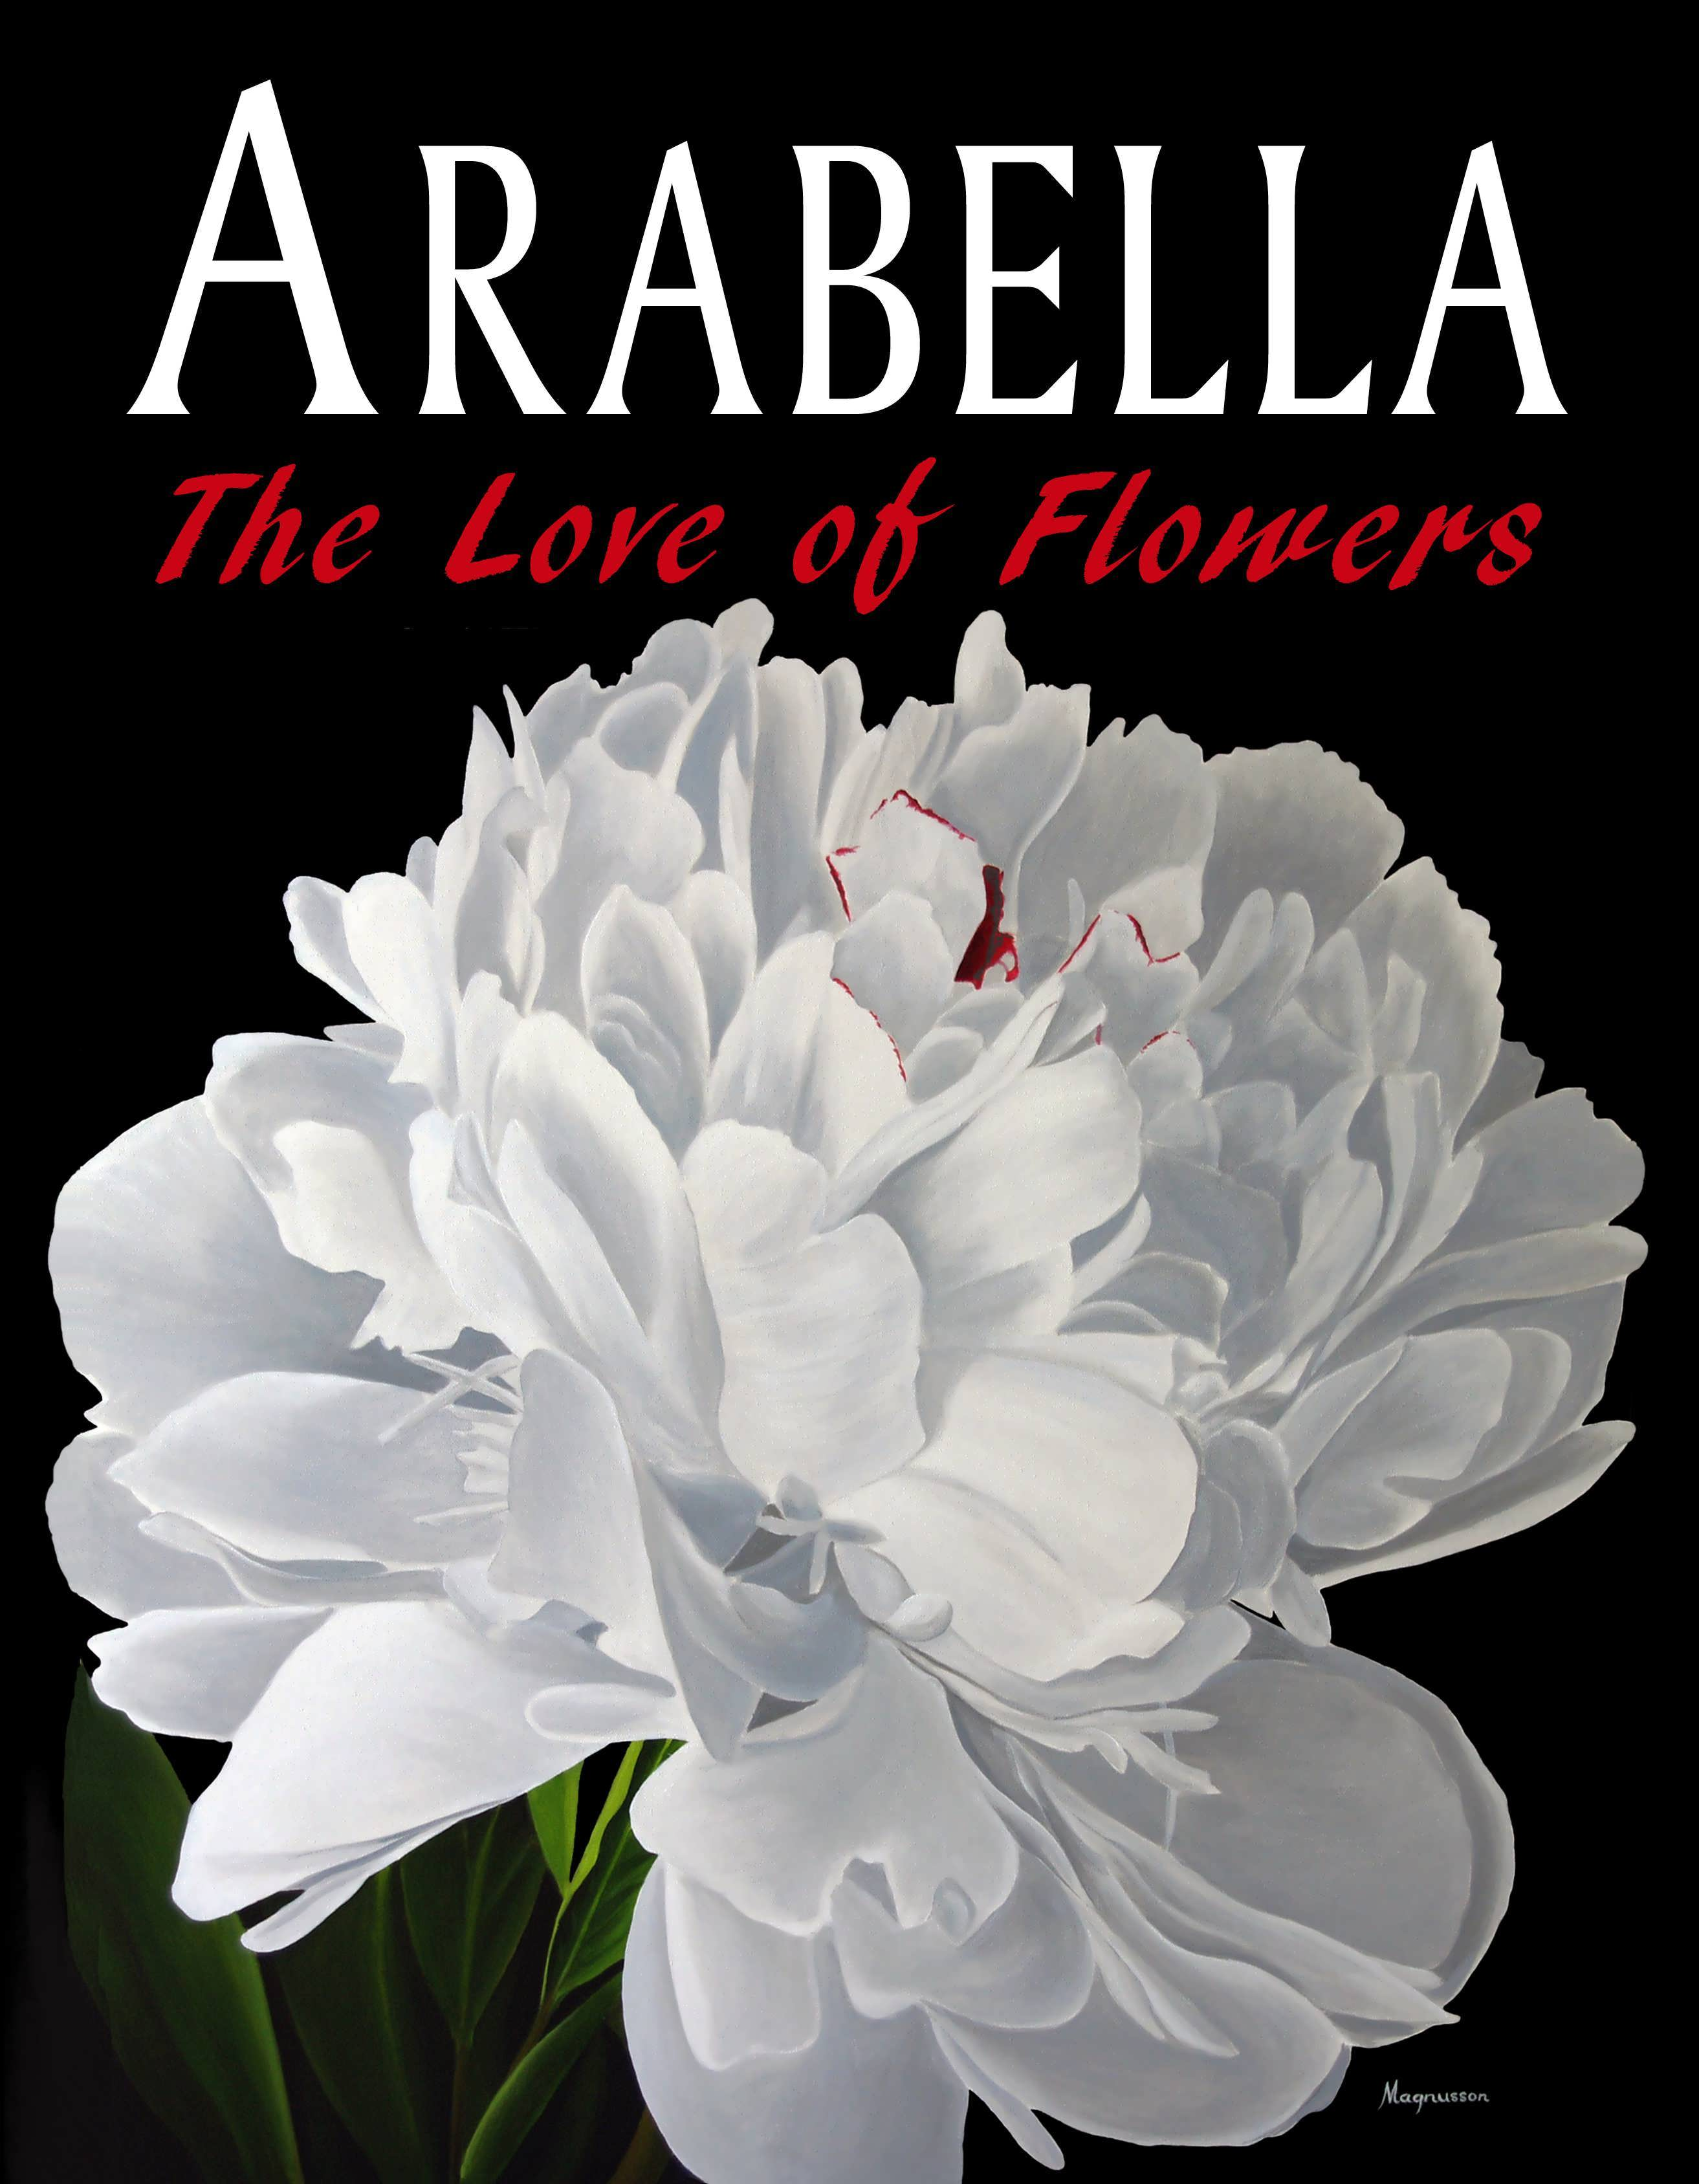 ARABELLA Flower book